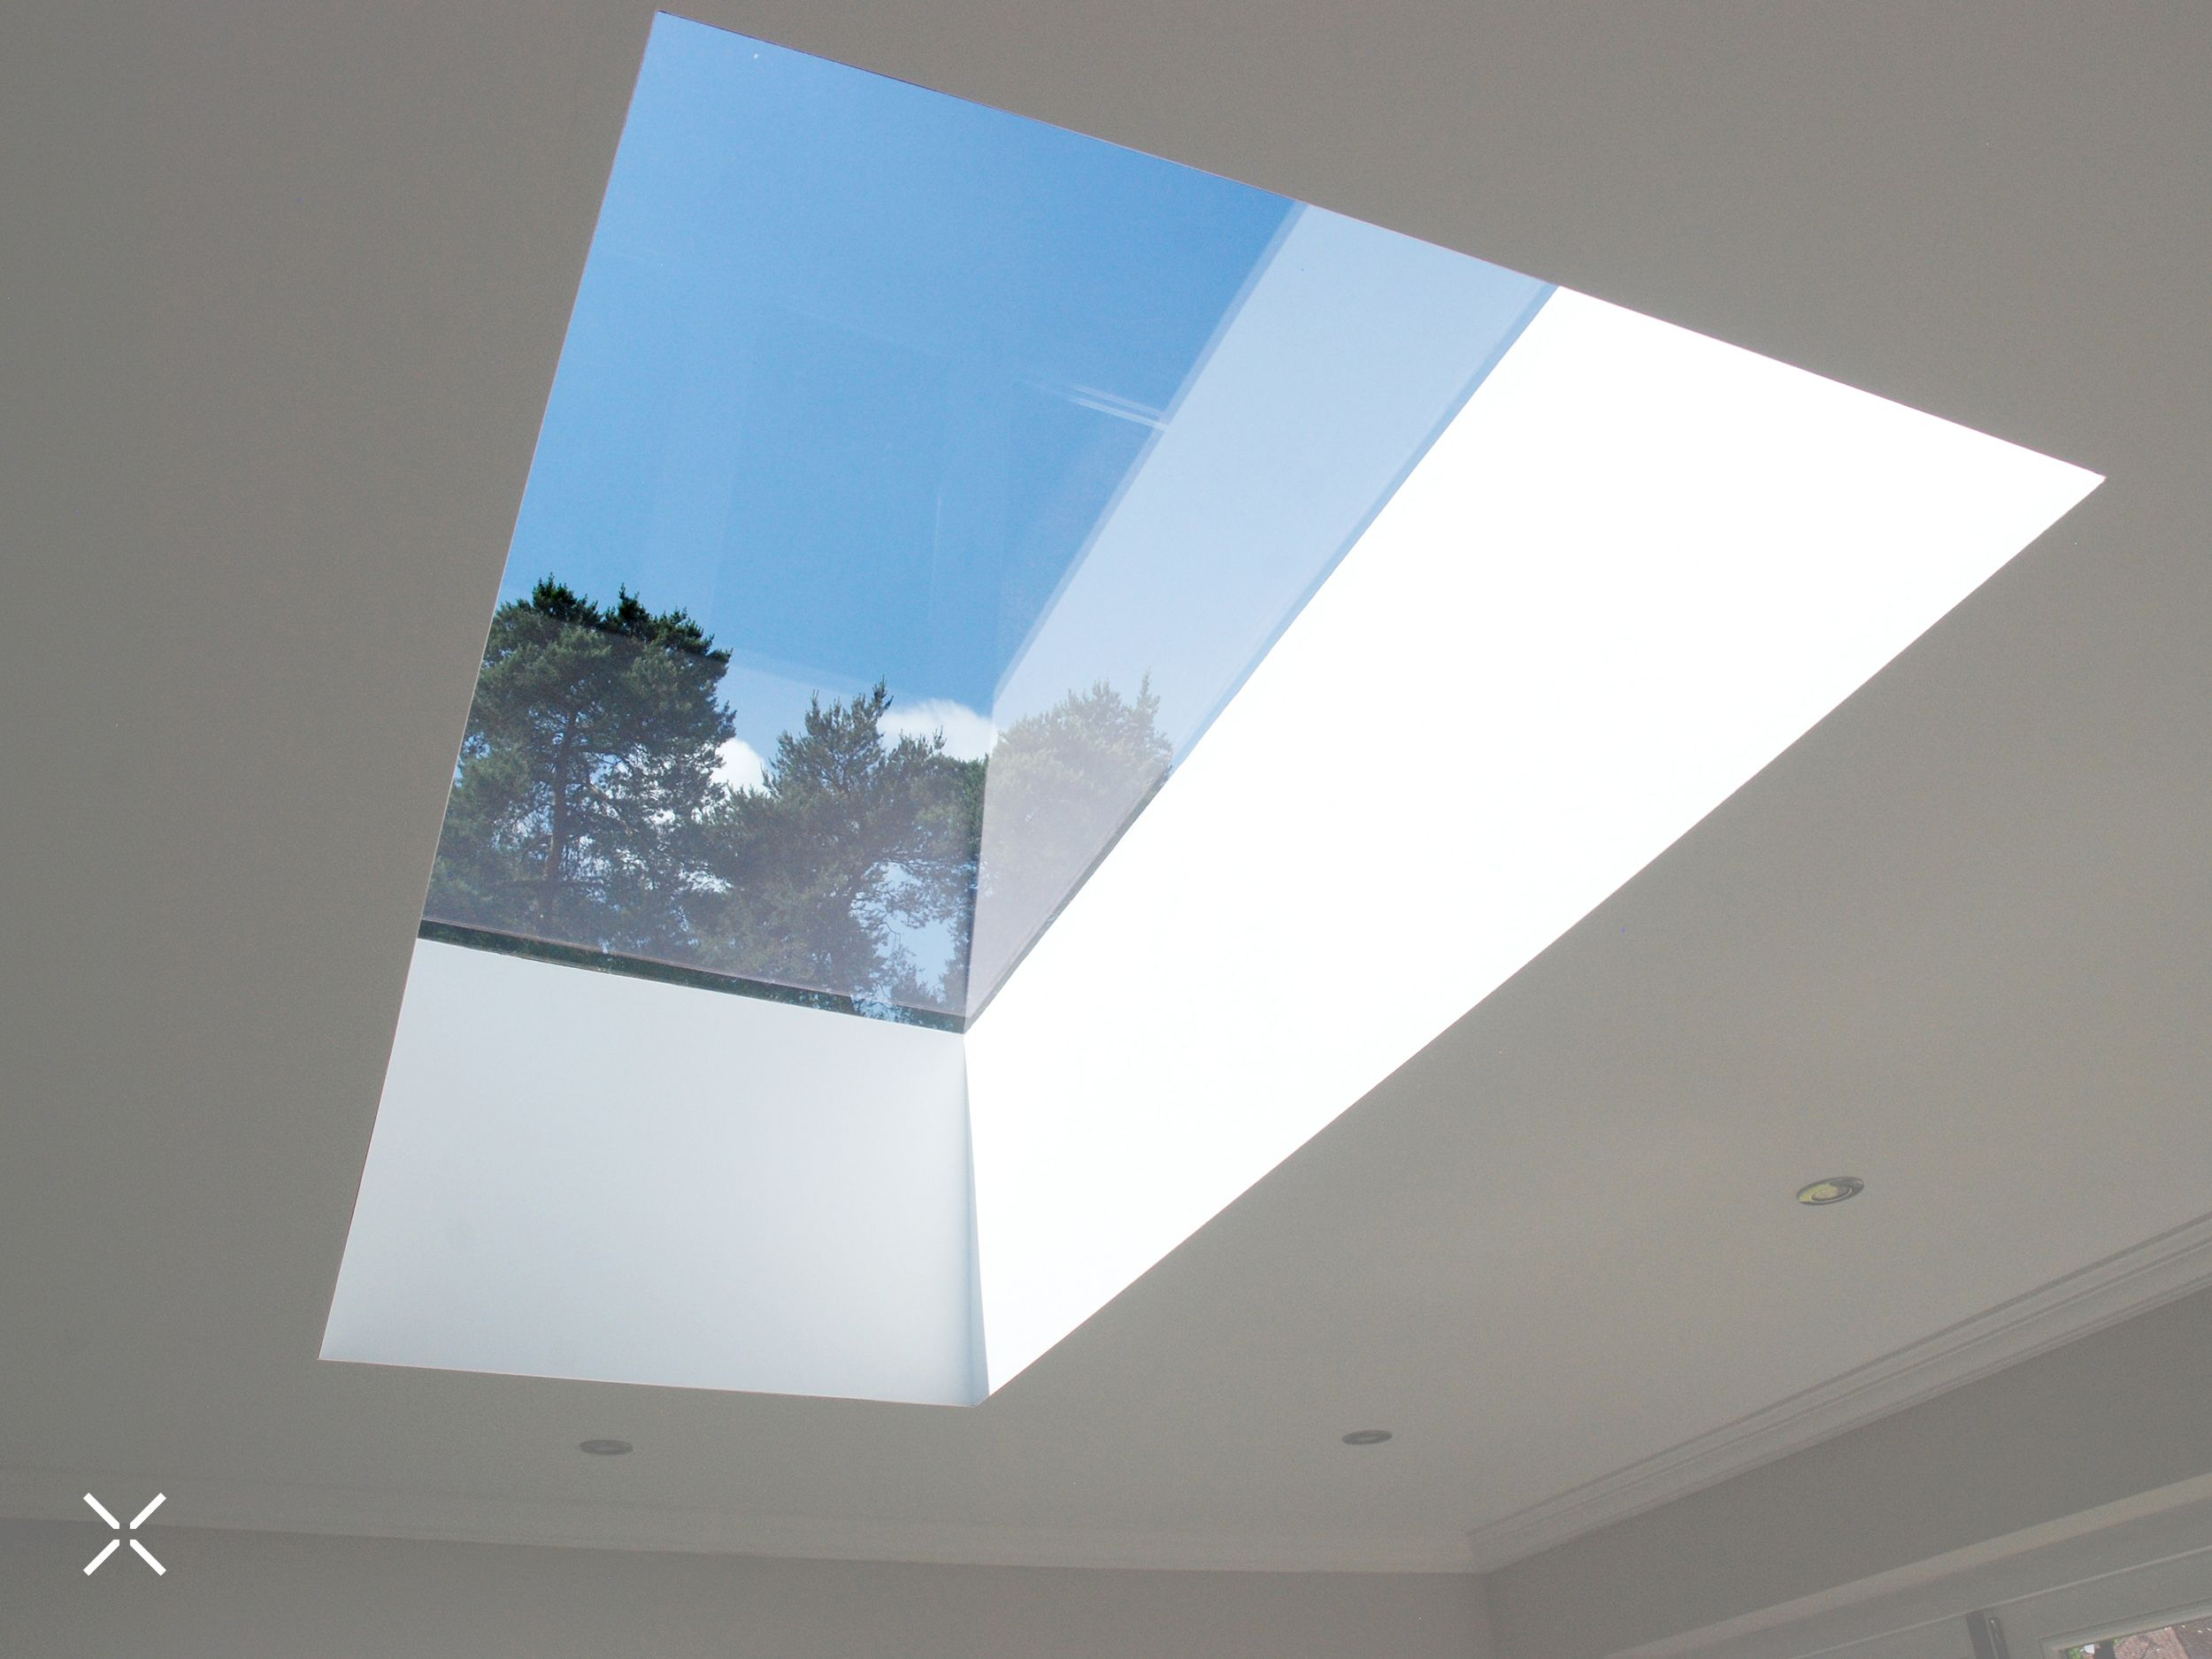 Achieving A Frameless View With Flat Roof Lights In 2020 Flat